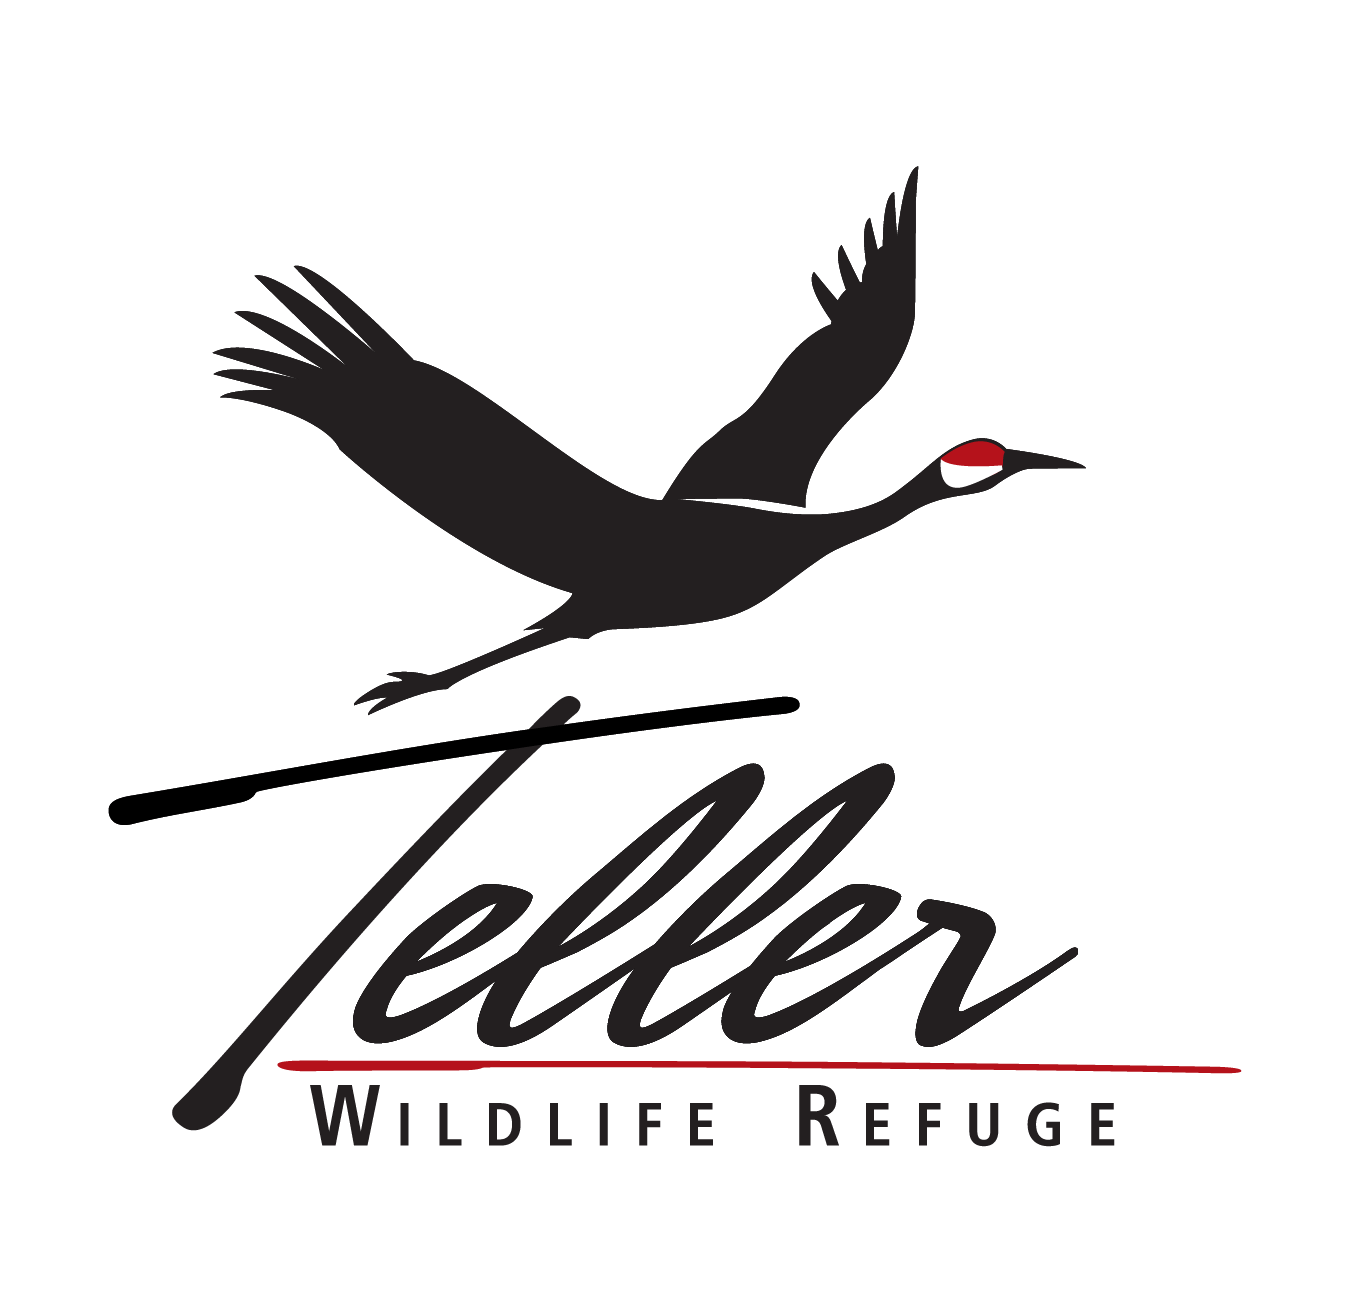 Teller Wildlife Refuge